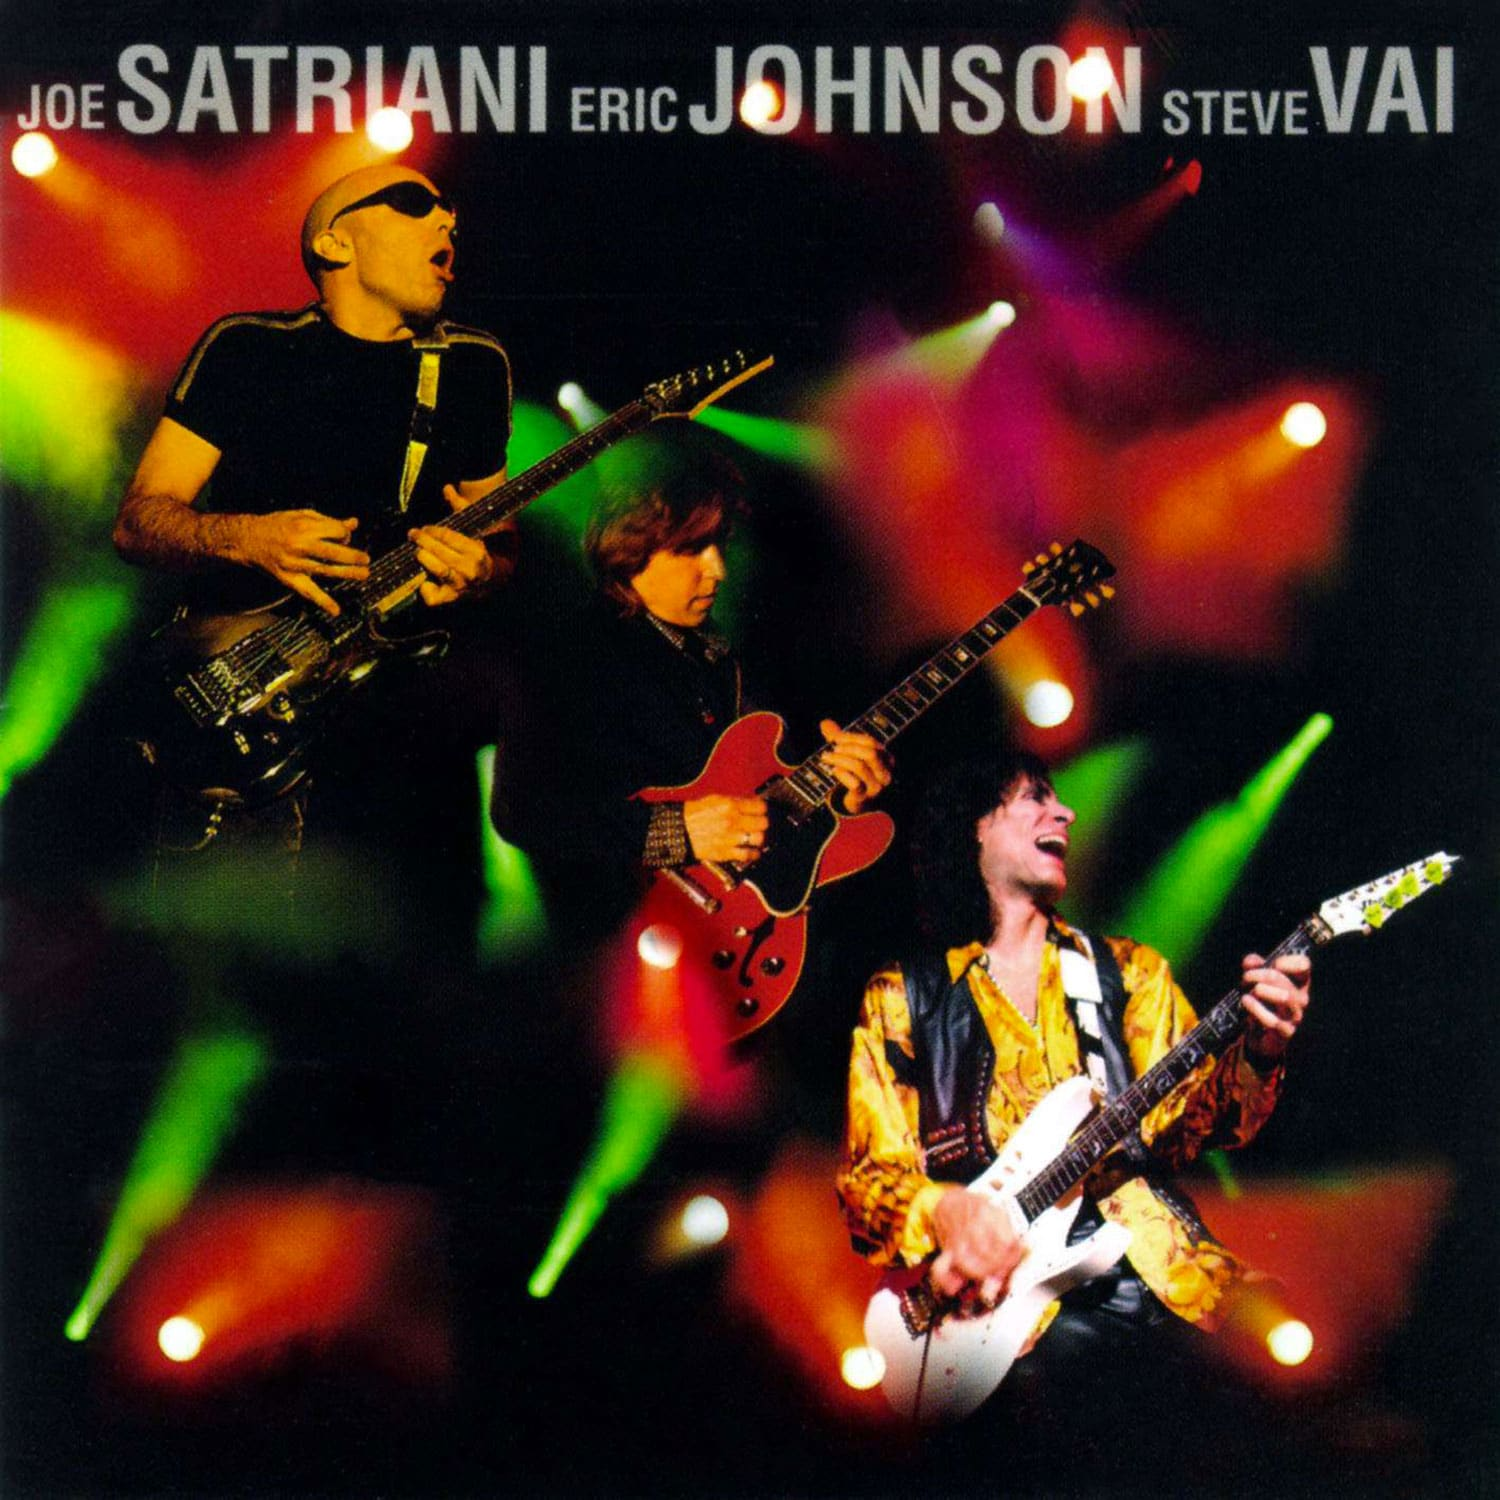 G3 Live in Concert Joe Satriani Steve Vai Eric Johnson 1996